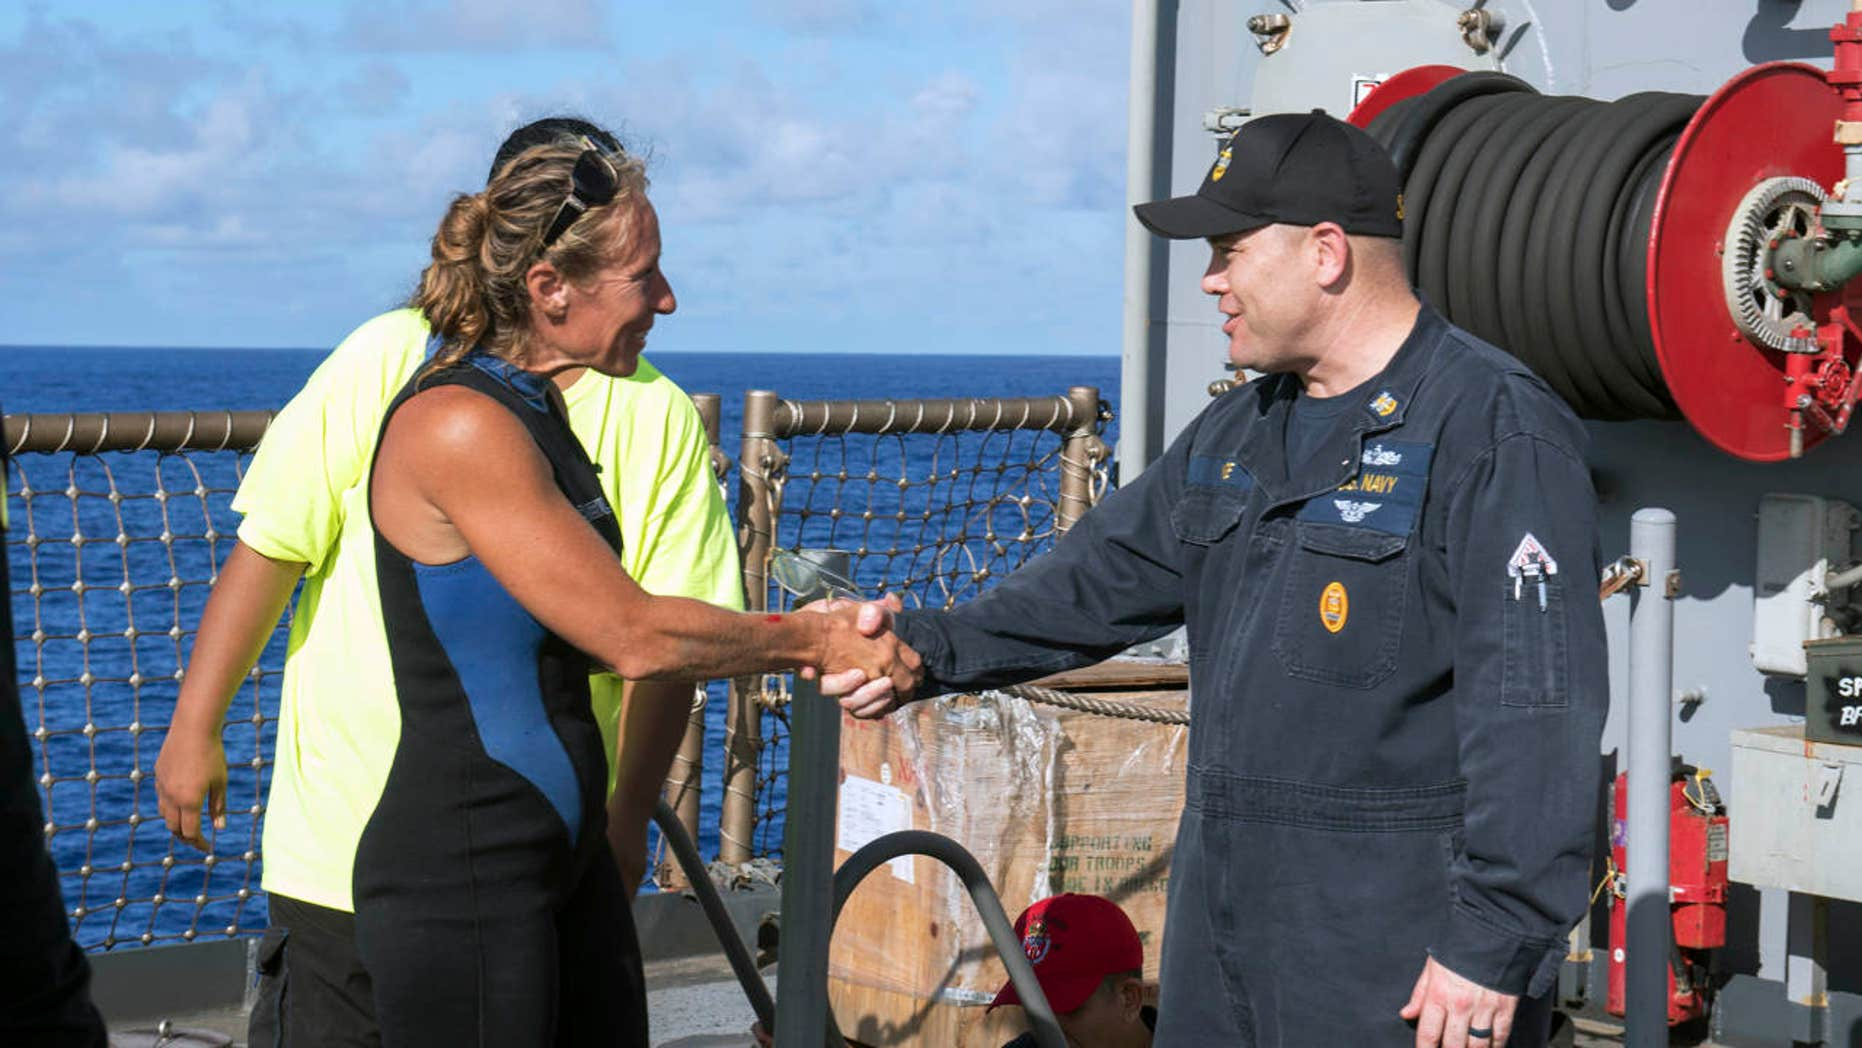 In this Wednesday, Oct. 25, 2017 photo, USS Ashland Command Master Chief Gary Wise welcomes aboard Jennifer Appel, an American mariner, one of two Honolulu women and their dogs who were rescued after being lost at sea for several months while trying to sail from Hawaii to Tahiti.